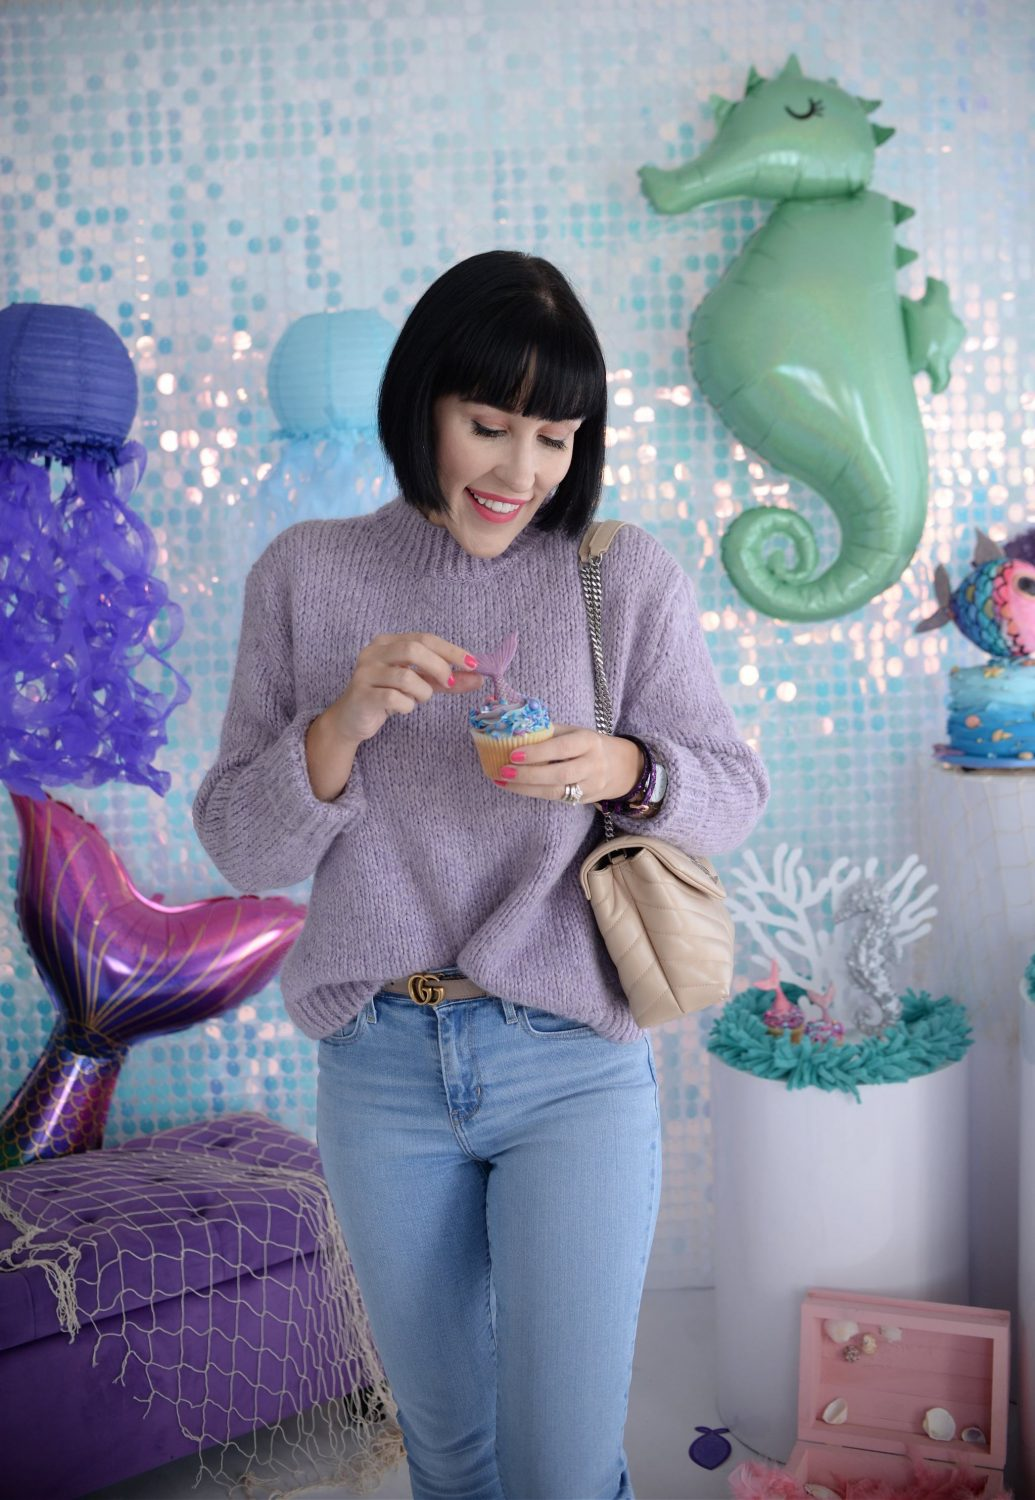 How To Look Cute At Home, Without Compromising Comfort